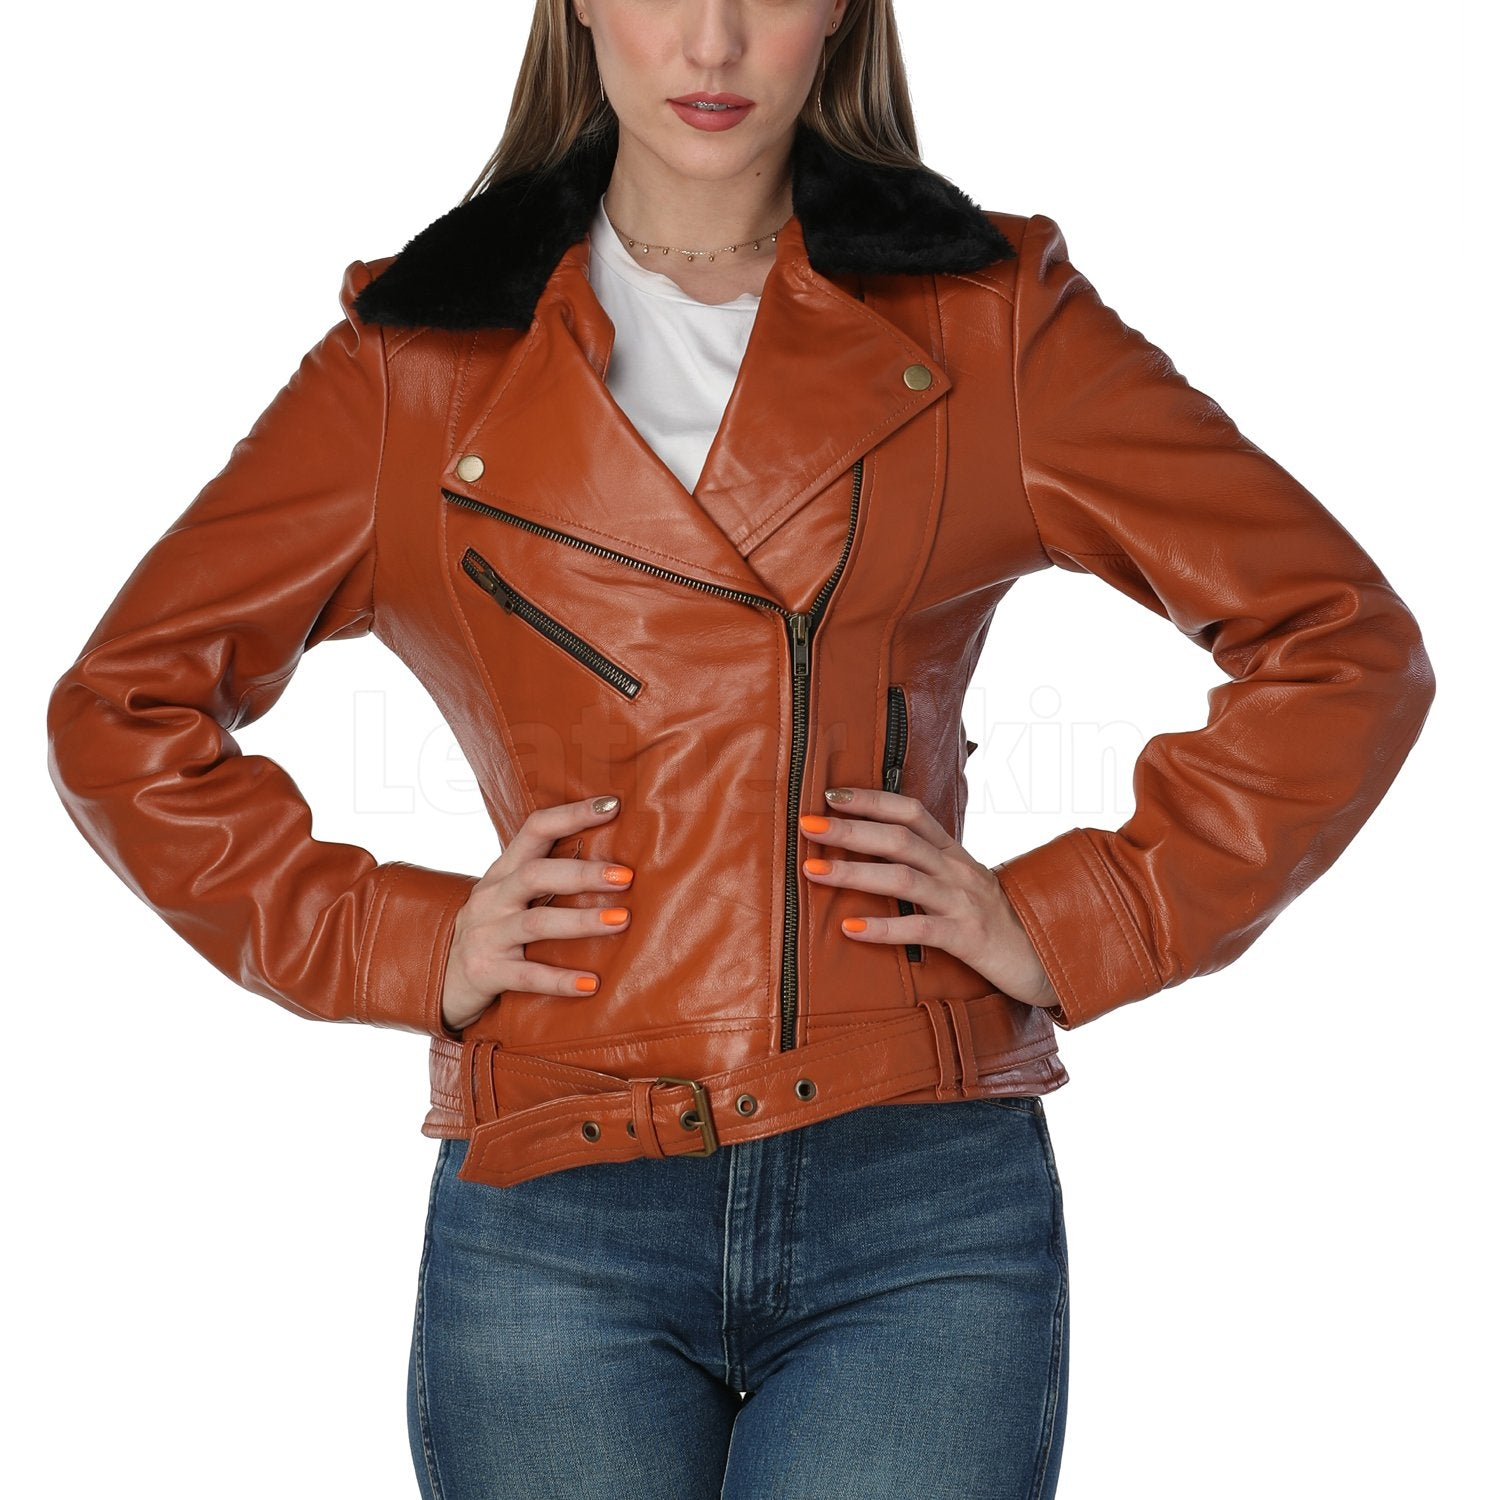 Cognac Brown Leather Jacket with Fur Collar